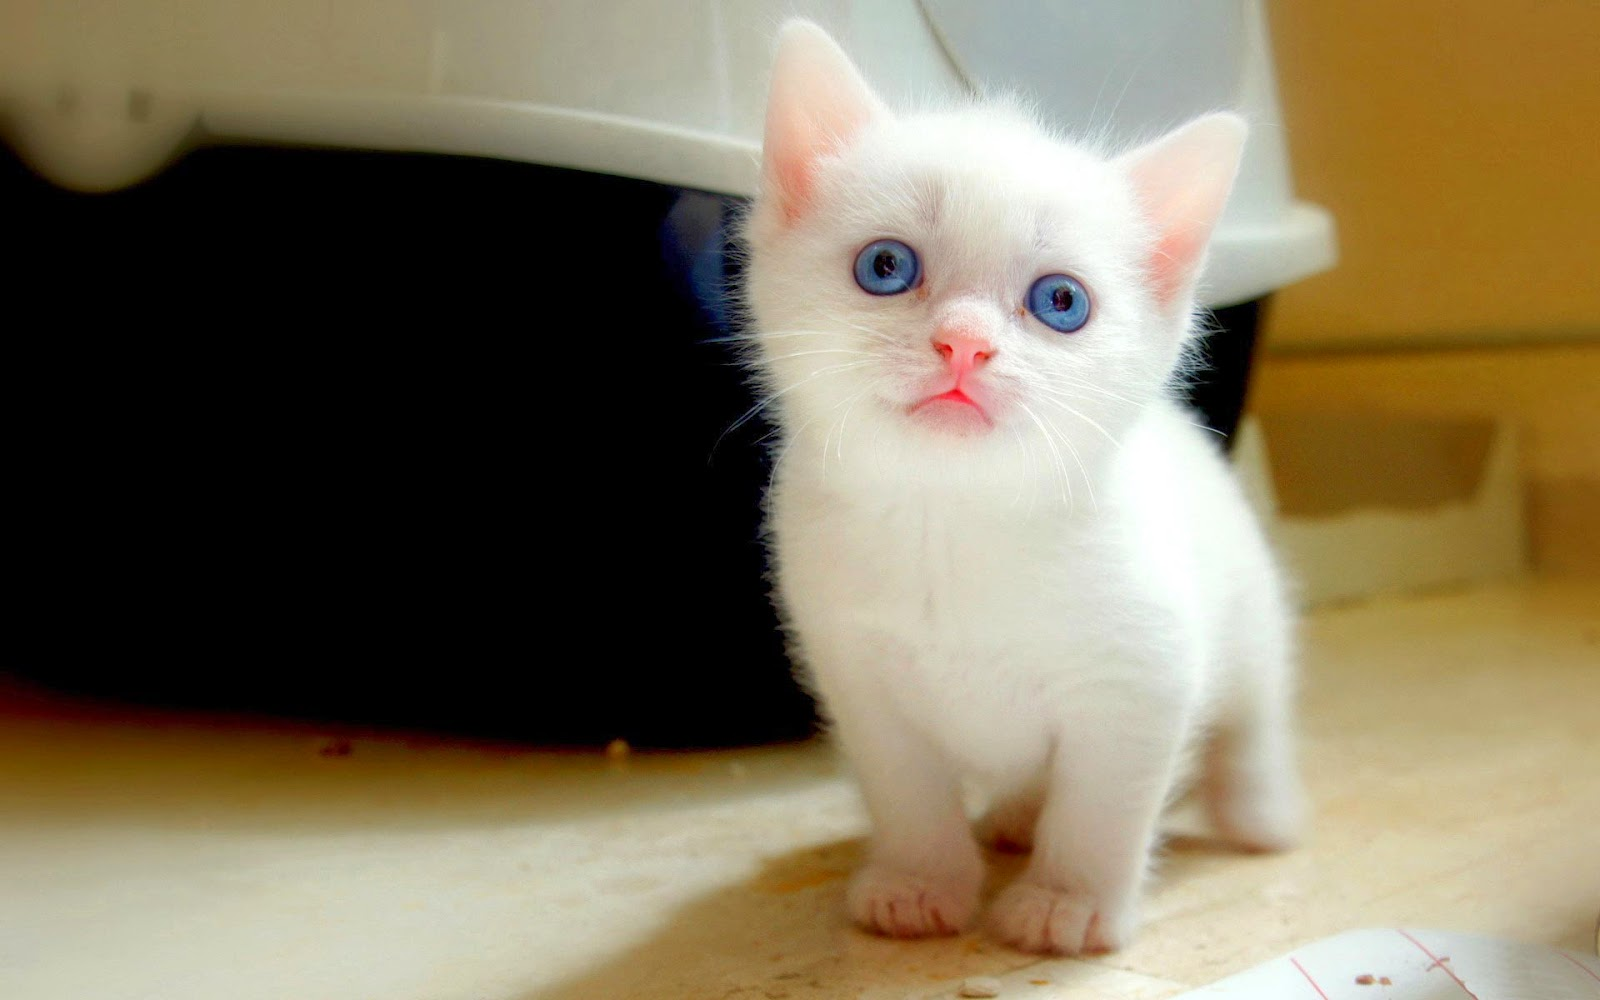 Lovable images cute cat wallpapers free download - Cute kittens hd wallpaper free download ...